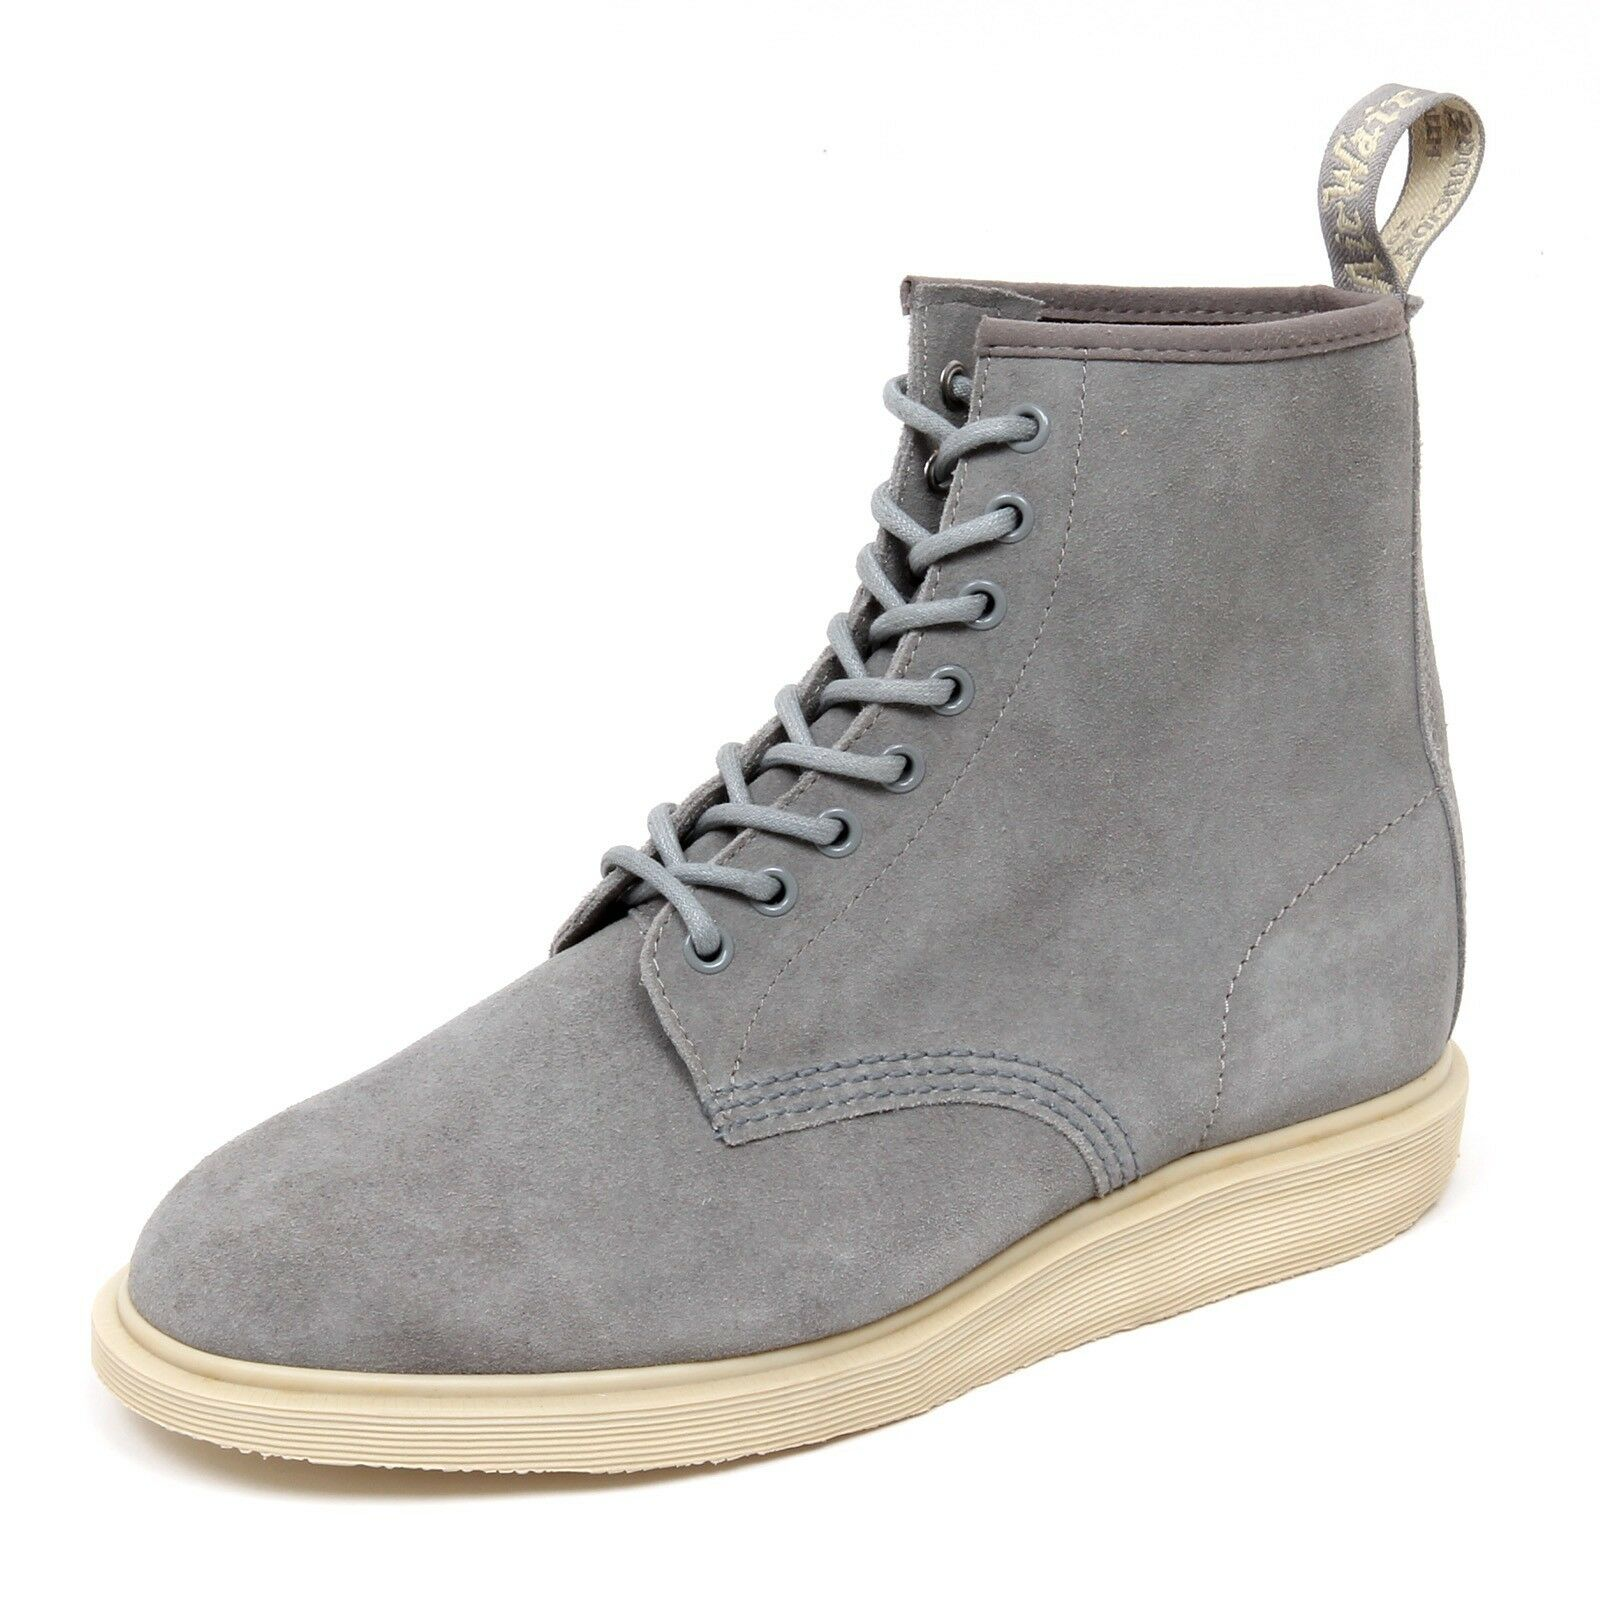 D3136 (without box) sneaker uomo DR. man MARTENS WHITON grigio shoe man DR. 8258a3